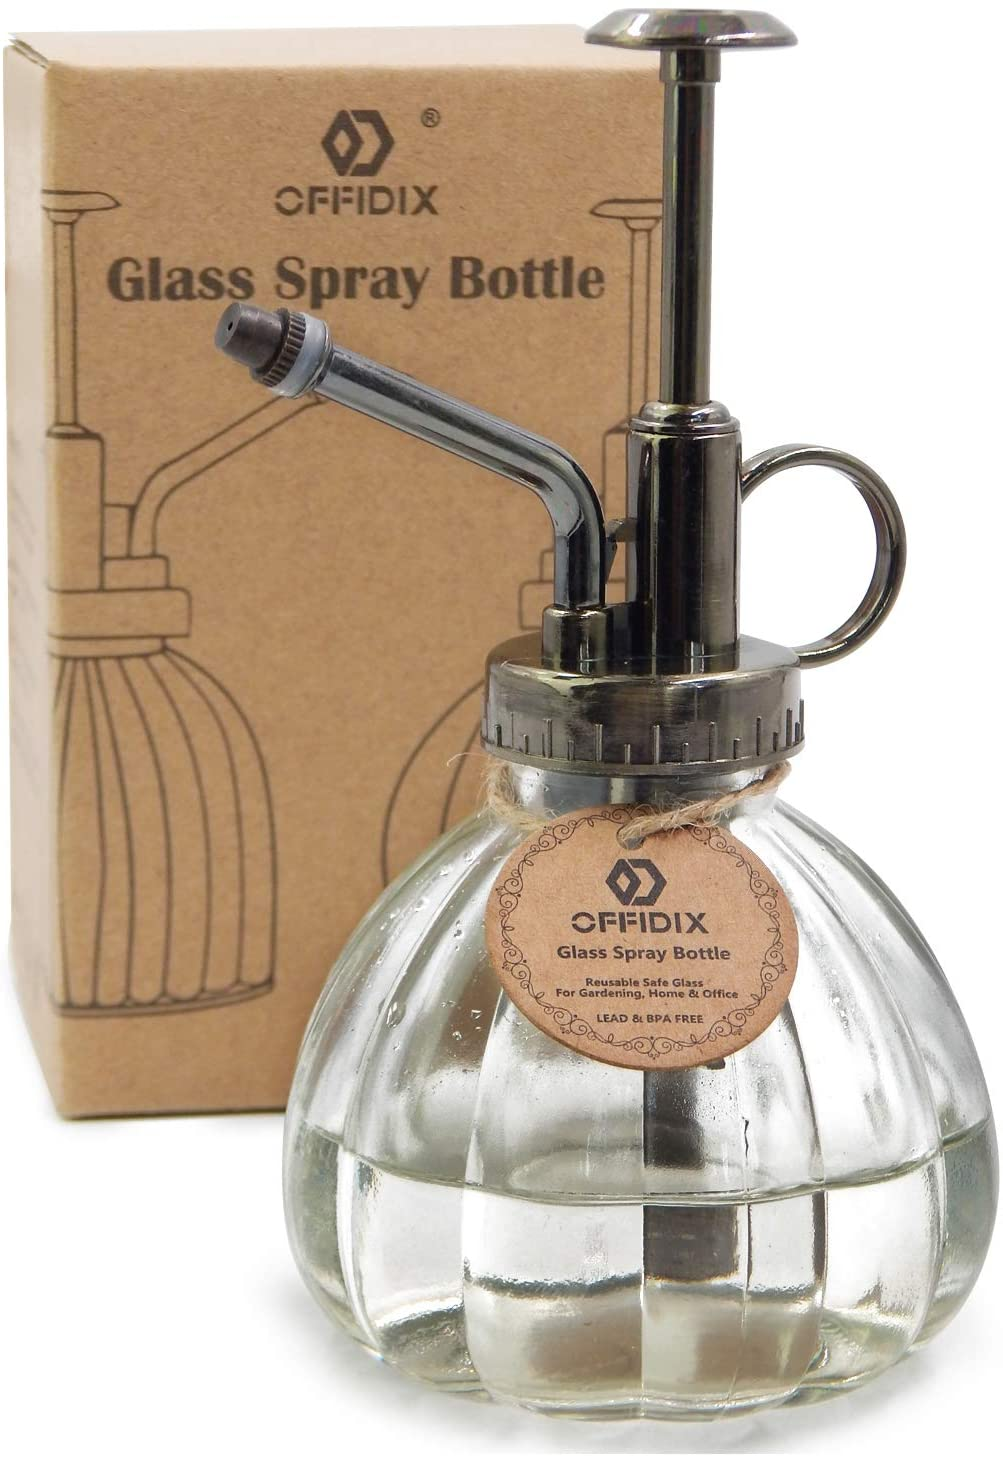 OFFIDIX Transparent Glass Watering Spray Bottle, 6.3 Inches Tall Vintage Style Spritzer Bronze Plastic Top Pump One Hand Watering Can Glass Spary Bottle Plant Mister Glass Watering Can Indoor : Garden & Outdoor